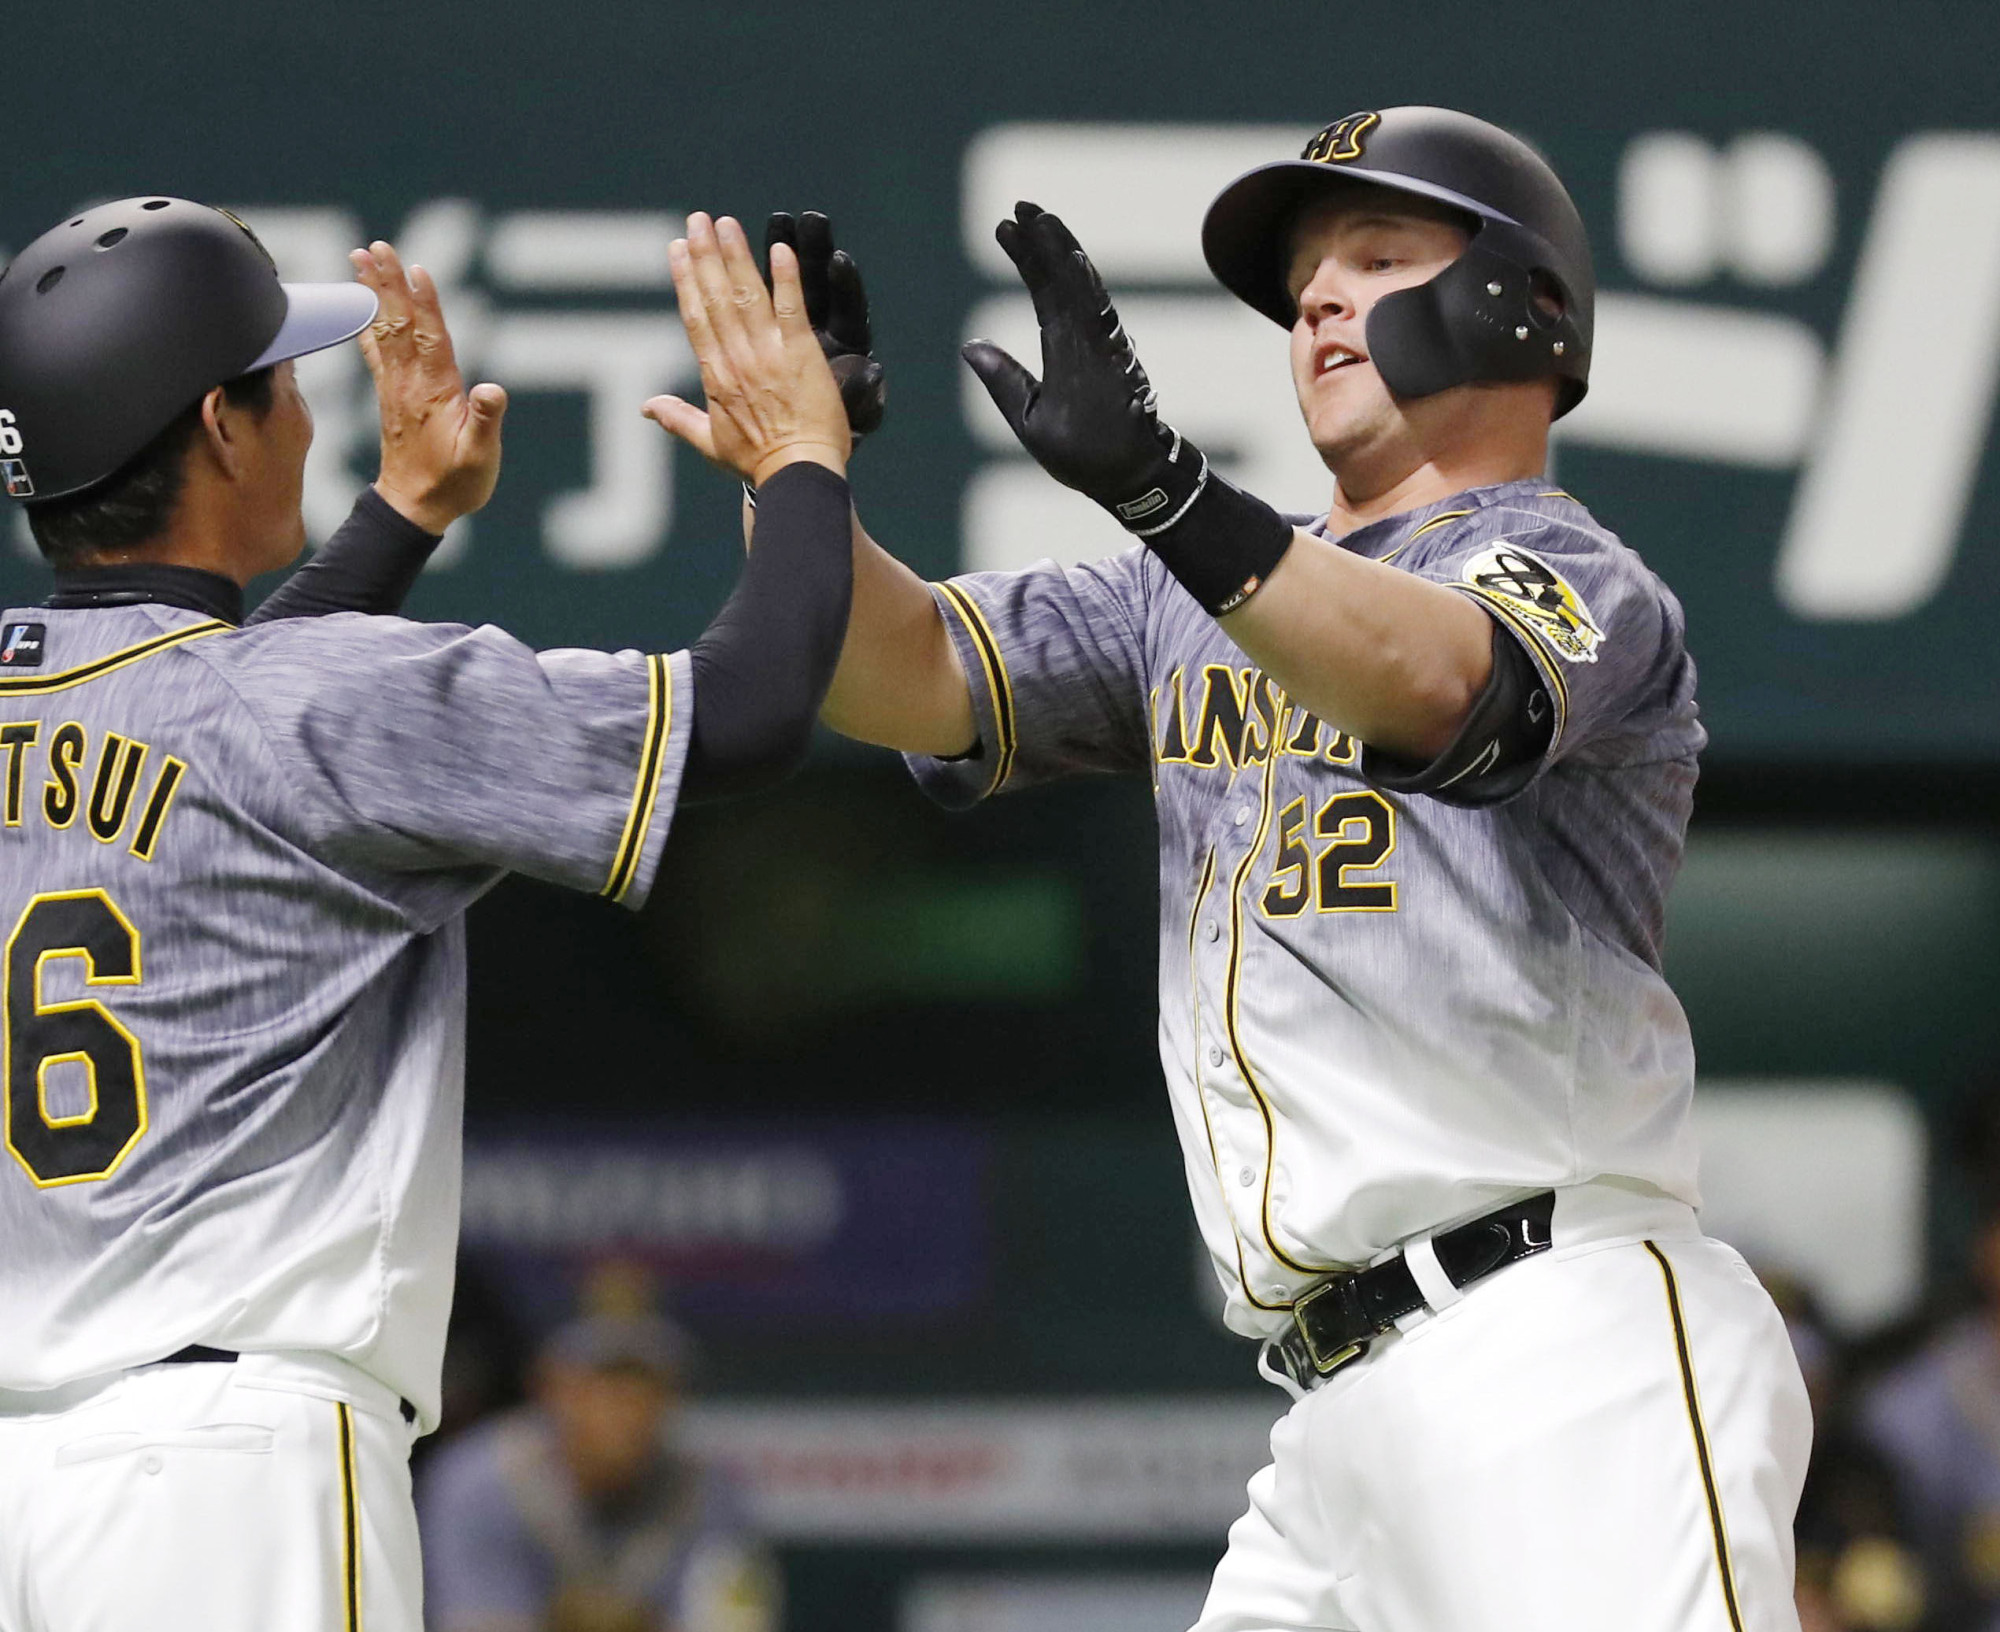 Hanshin's Jerry Sands is preparing for his first season in Japan after playing in the Korea Baseball Organization for the past two seasons.   KYODO